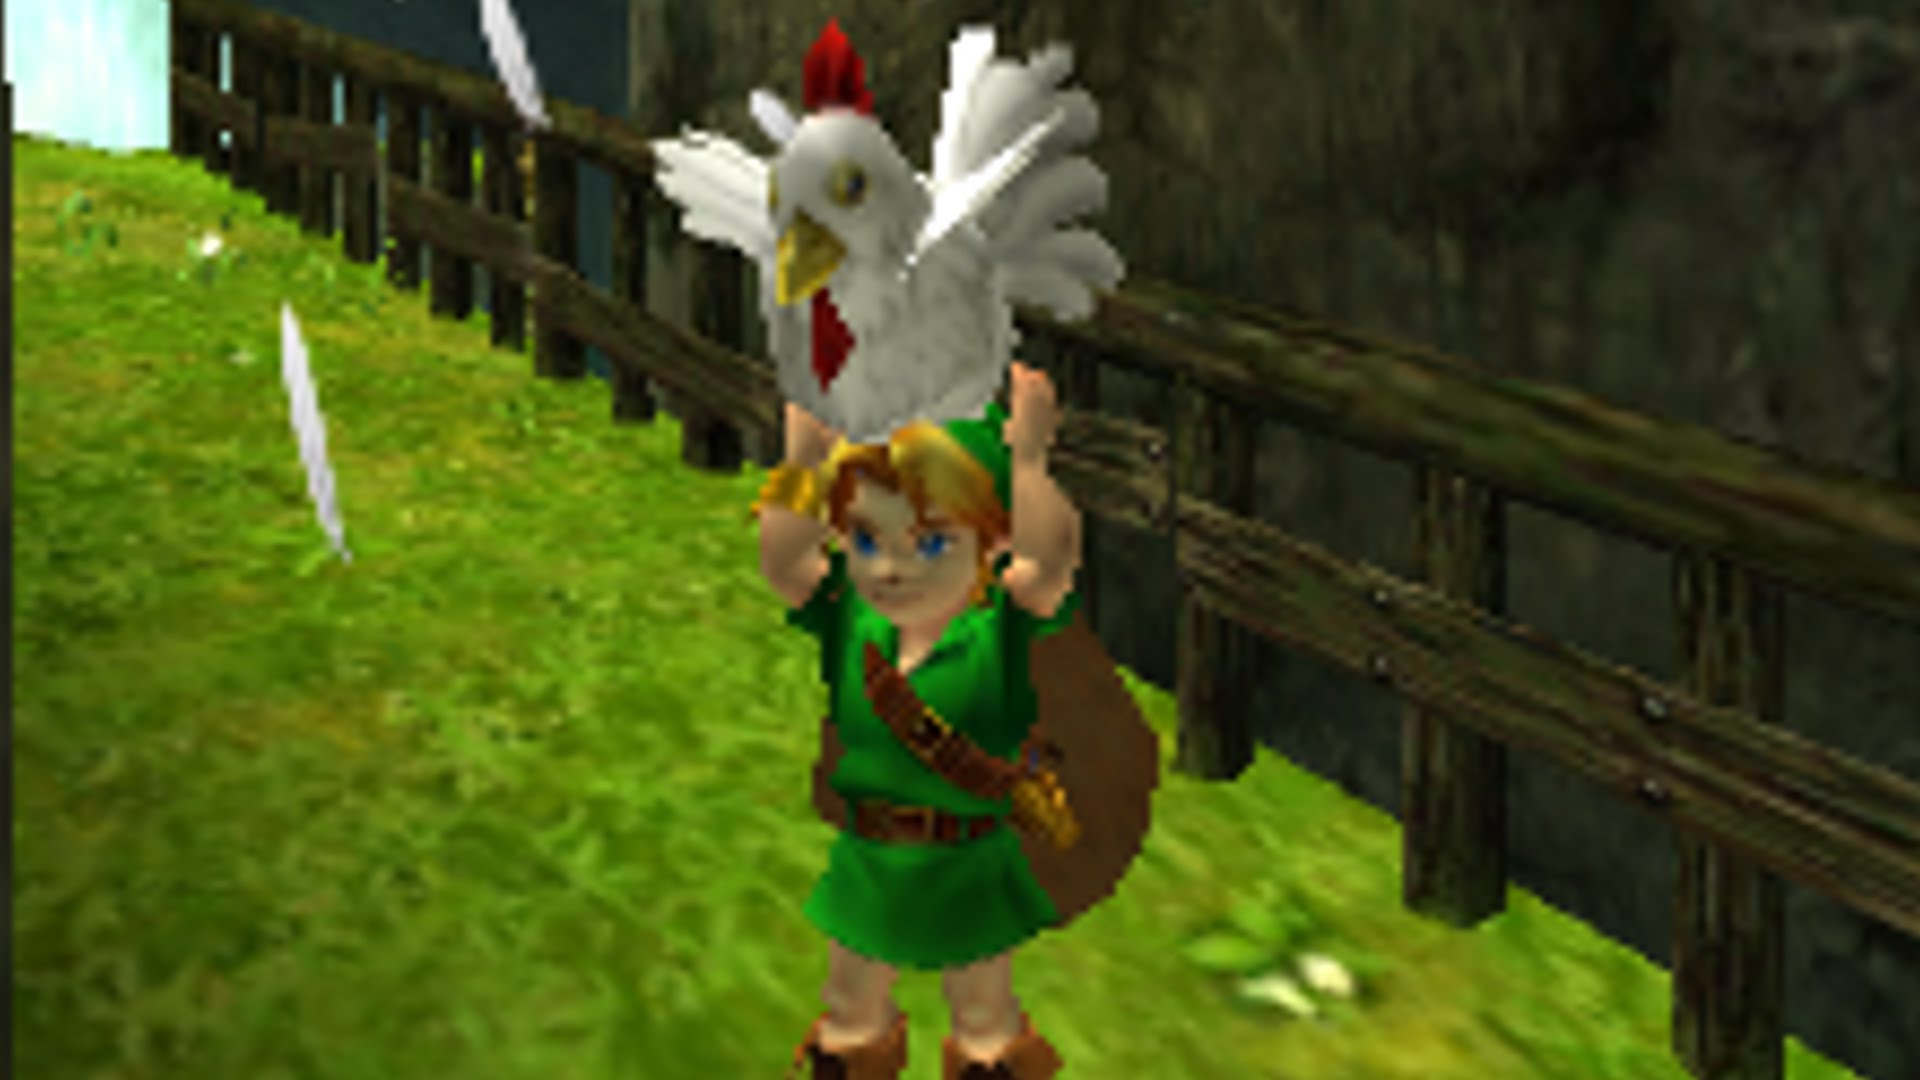 Getting REAL AF TIRED of this SCOUNDREL-ASS POULTRY.